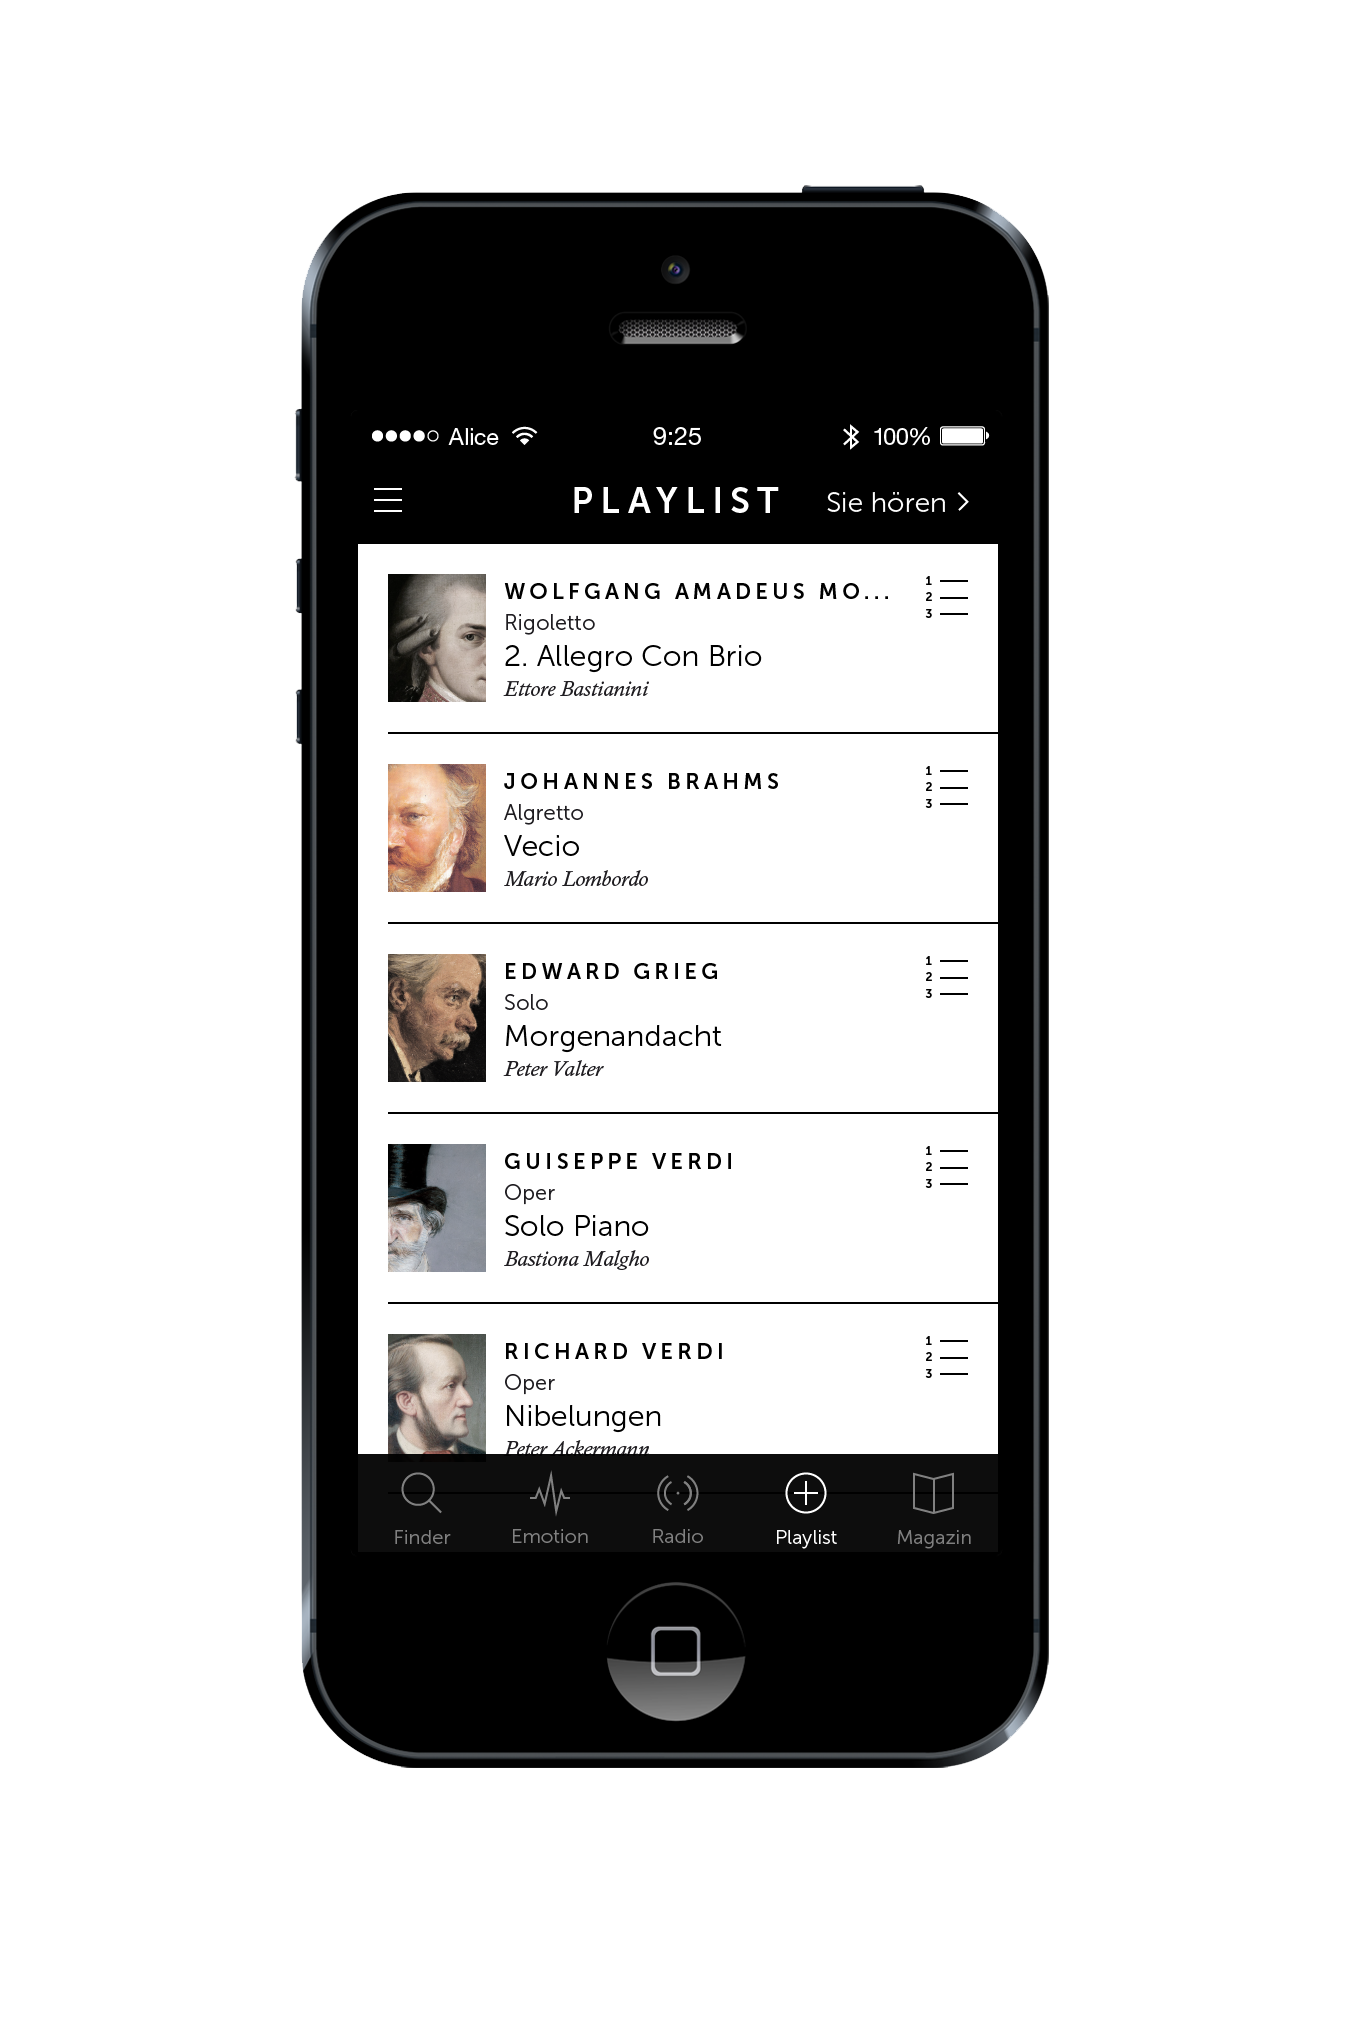 Idagio_AppDesign_Playlist_iphone5_140908-01